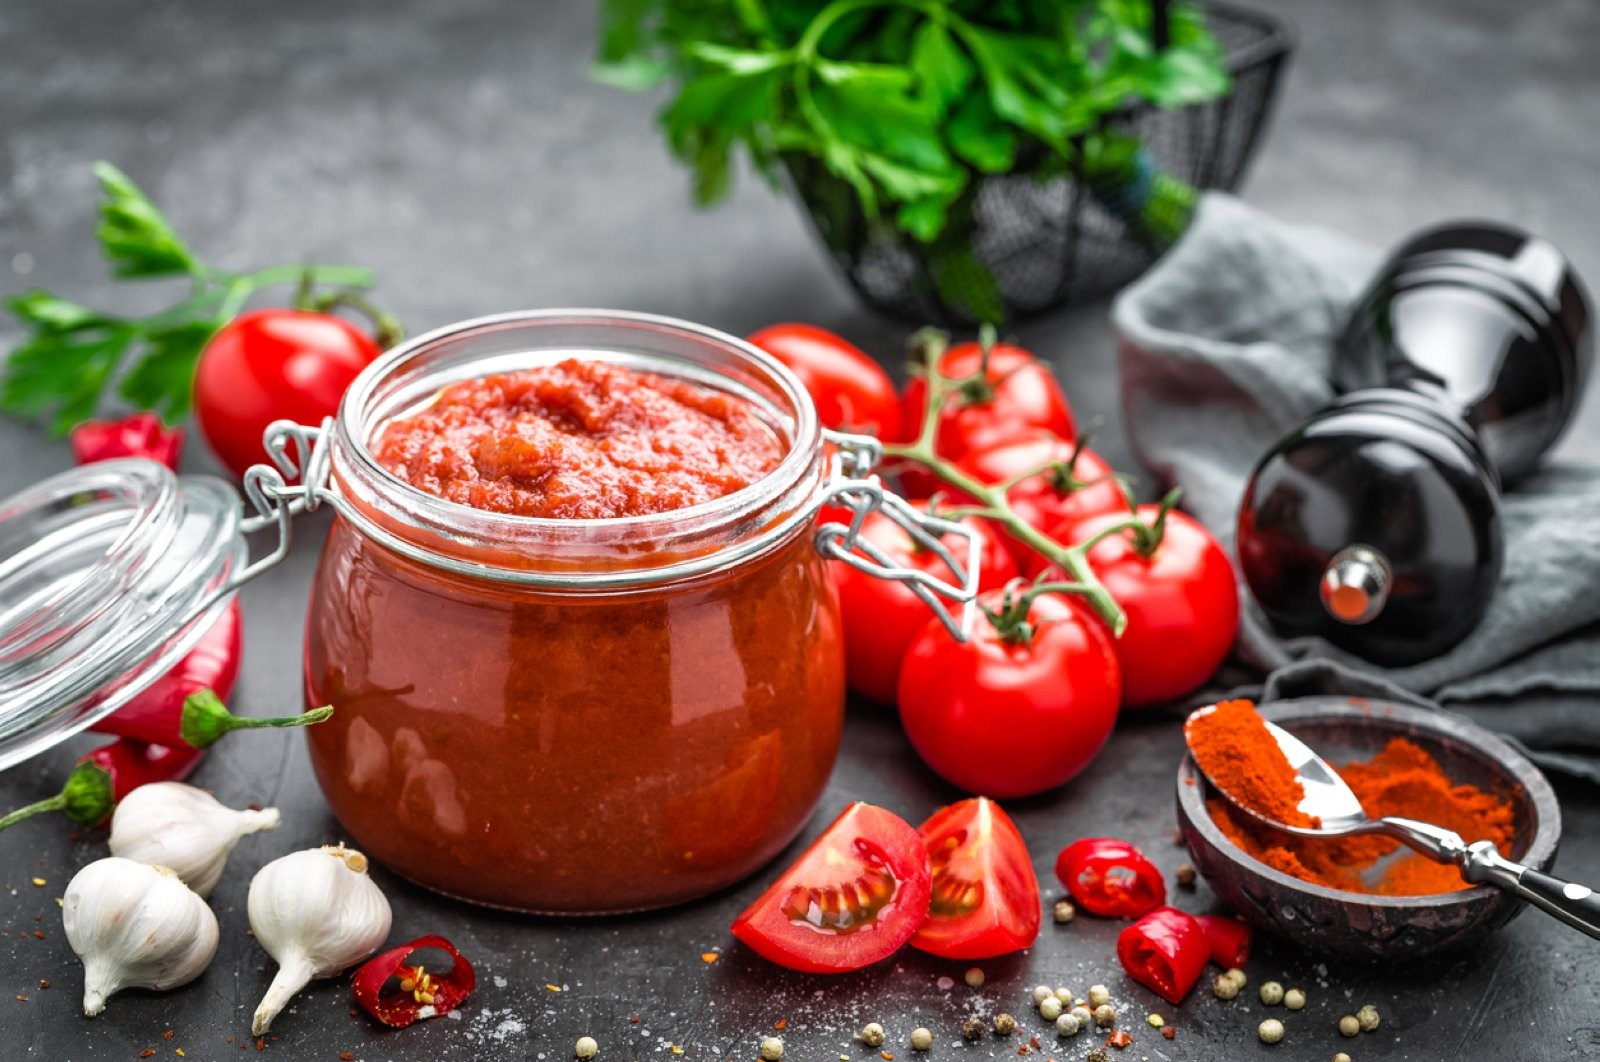 Tomato paste is among the products that saw an increase in exports from Turkey during the Coronavirus pandemic. (iStock Photo by Yelena Yemchuk)